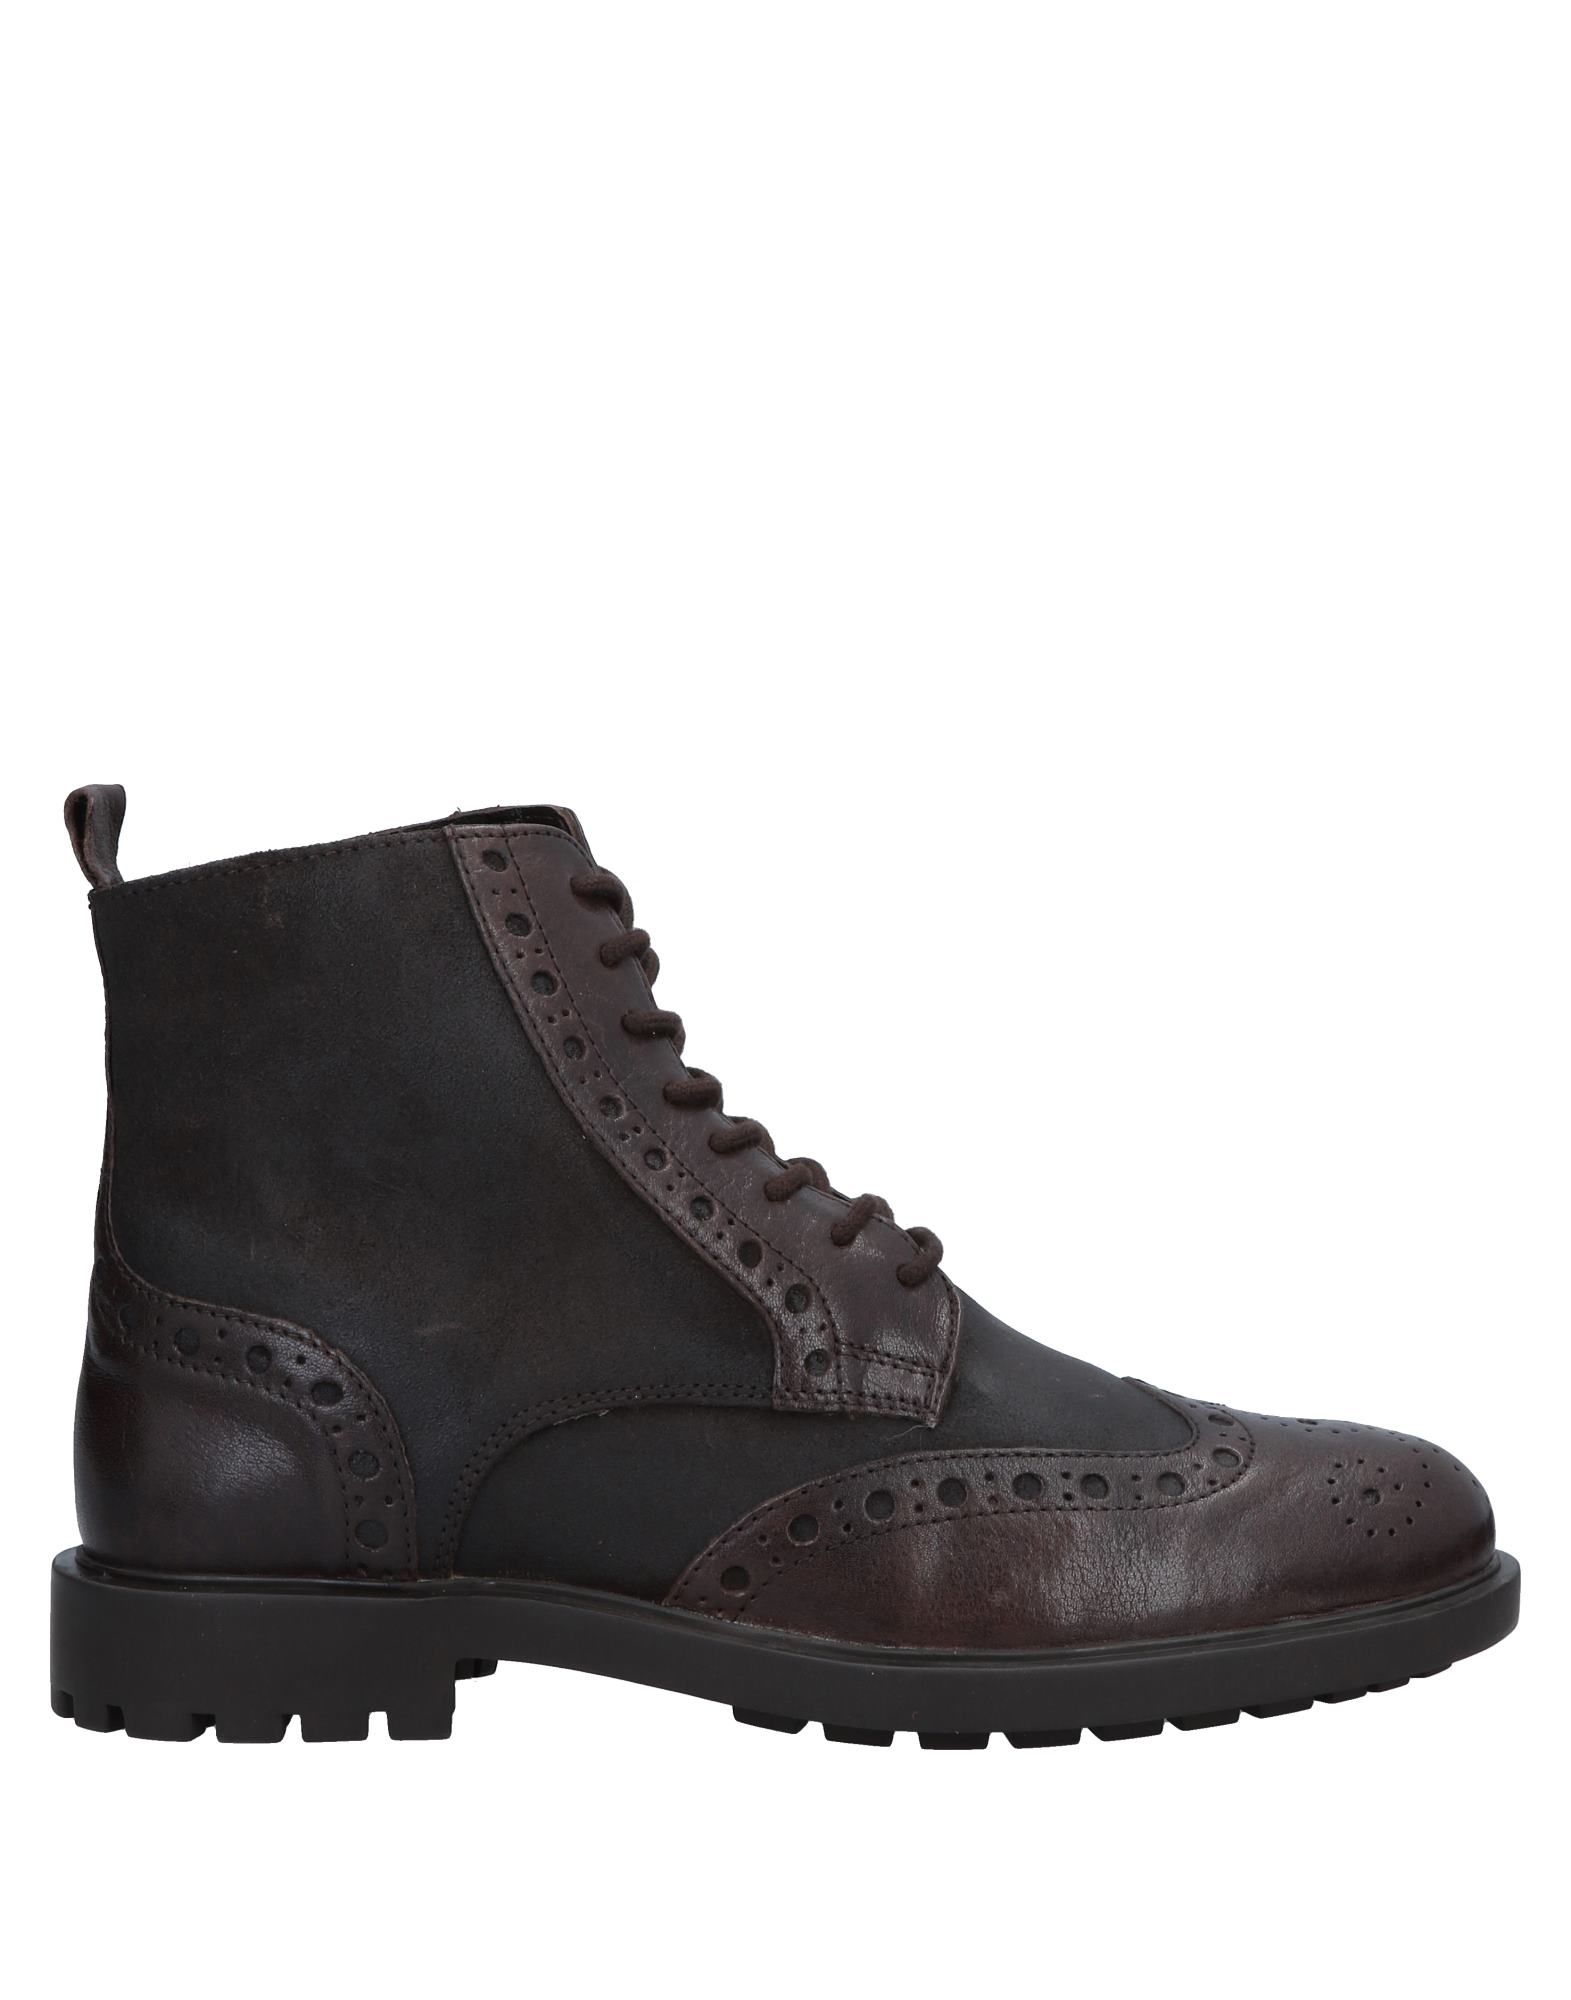 Bottine Lumberjack Homme - Bottines Lumberjack   - 11569934UM